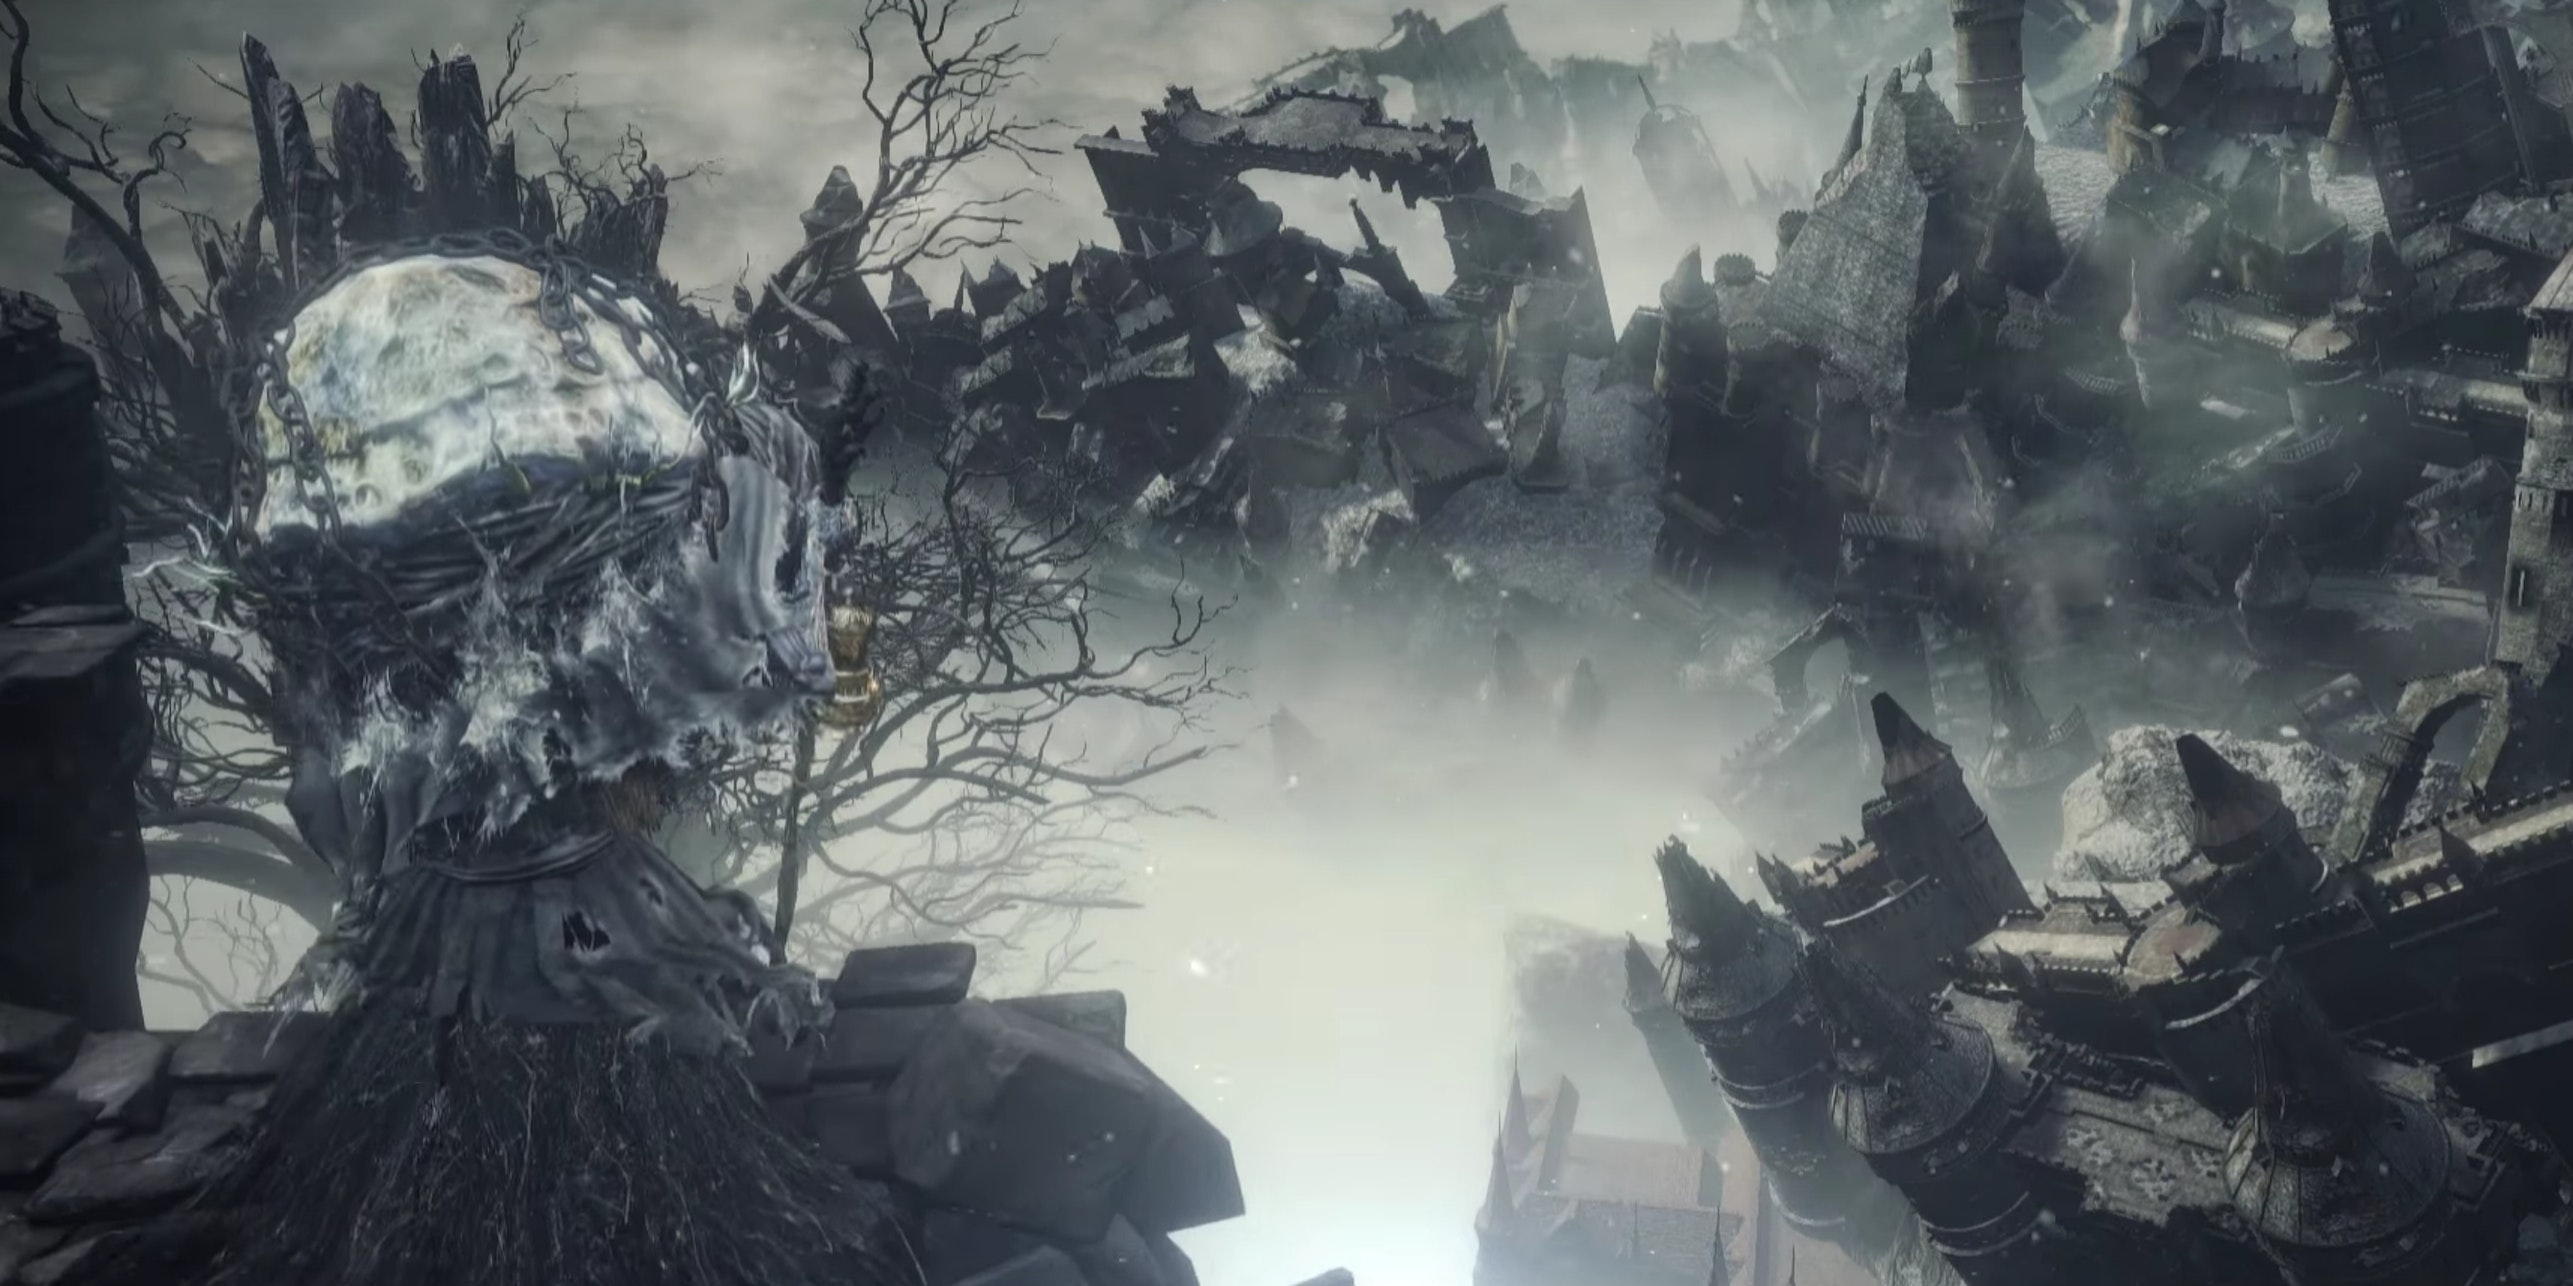 The Ringed City Wallpaper: The Final 'Dark Souls 3' DLC Is 'The Ringed City'